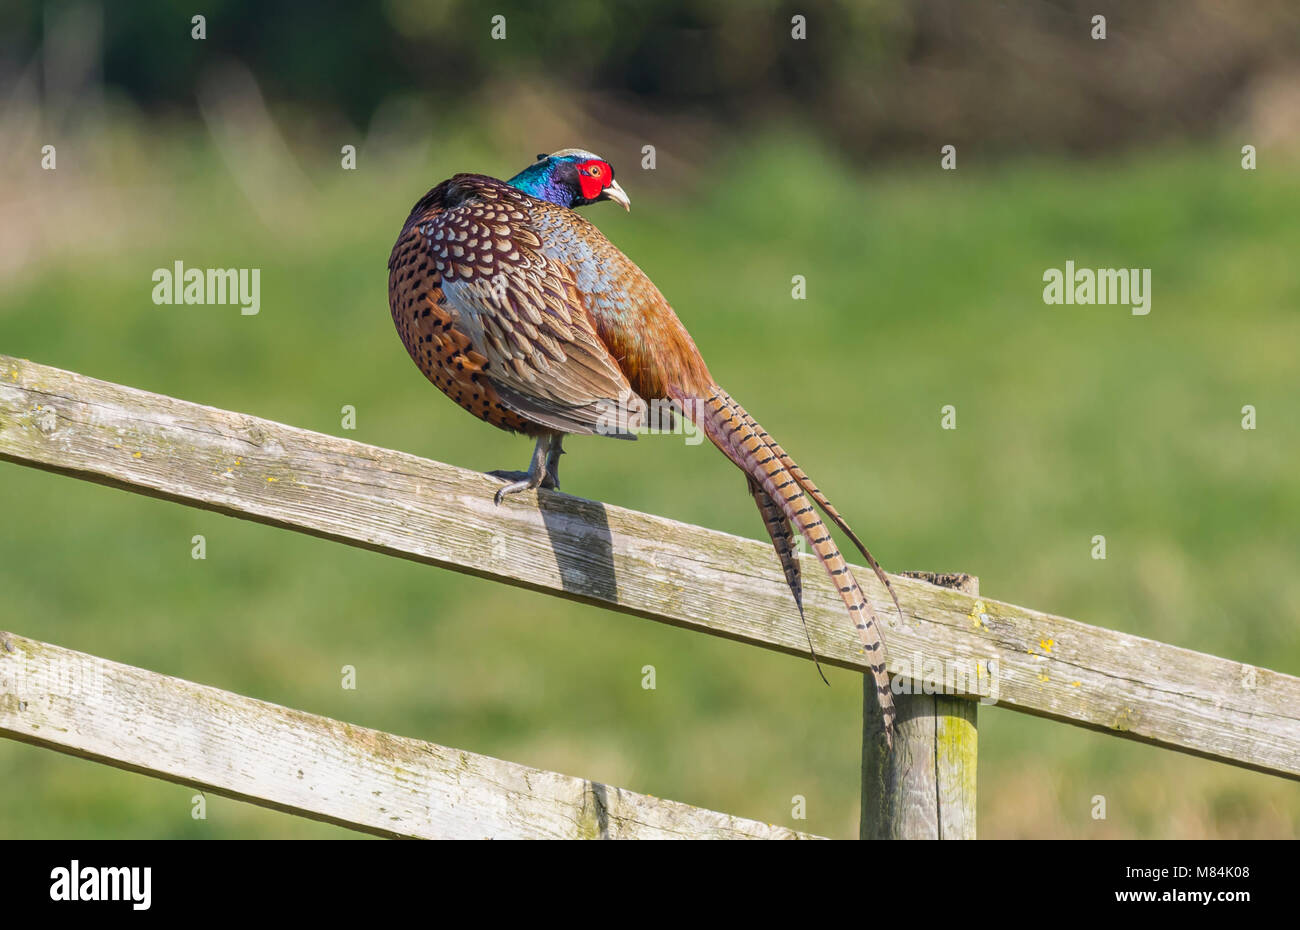 Adult male Pheasant (Phasianus colchicus) standing on a fence in Winter in West Sussex, England, UK. - Stock Image